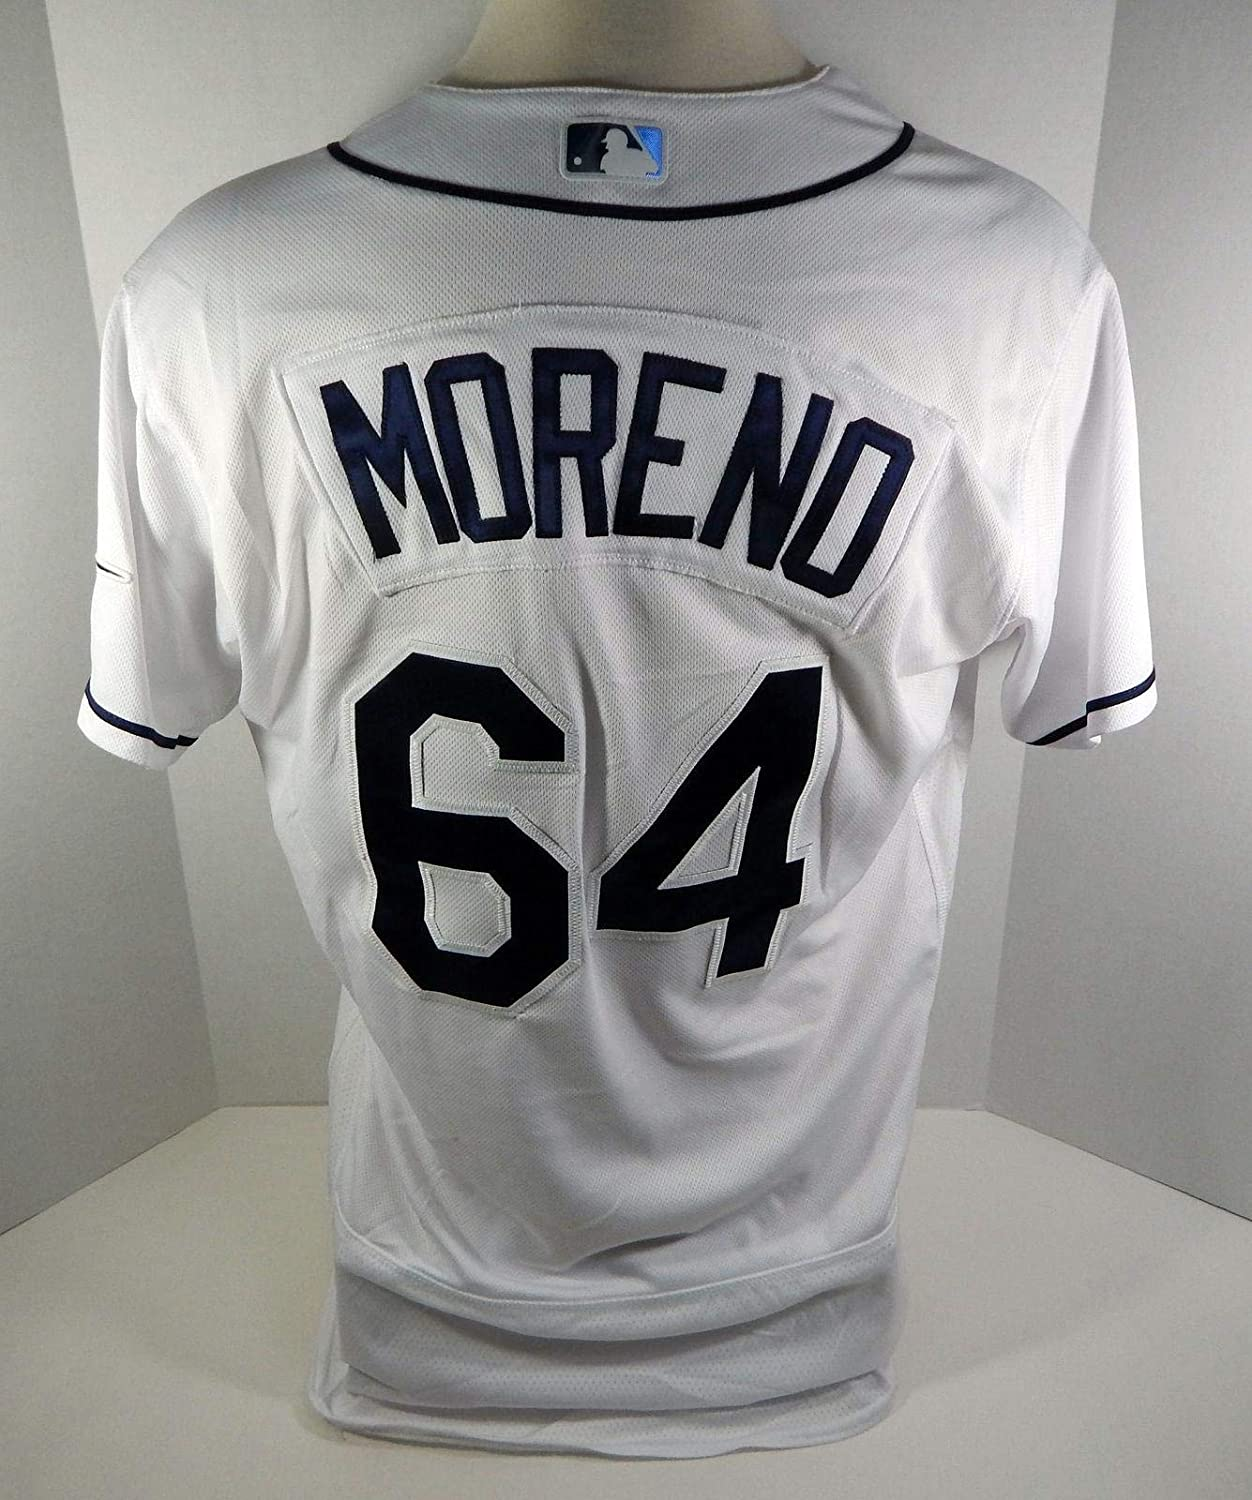 Amazon.com: Tampa Bay Rays Diego Moreno #64 Game Issued ...